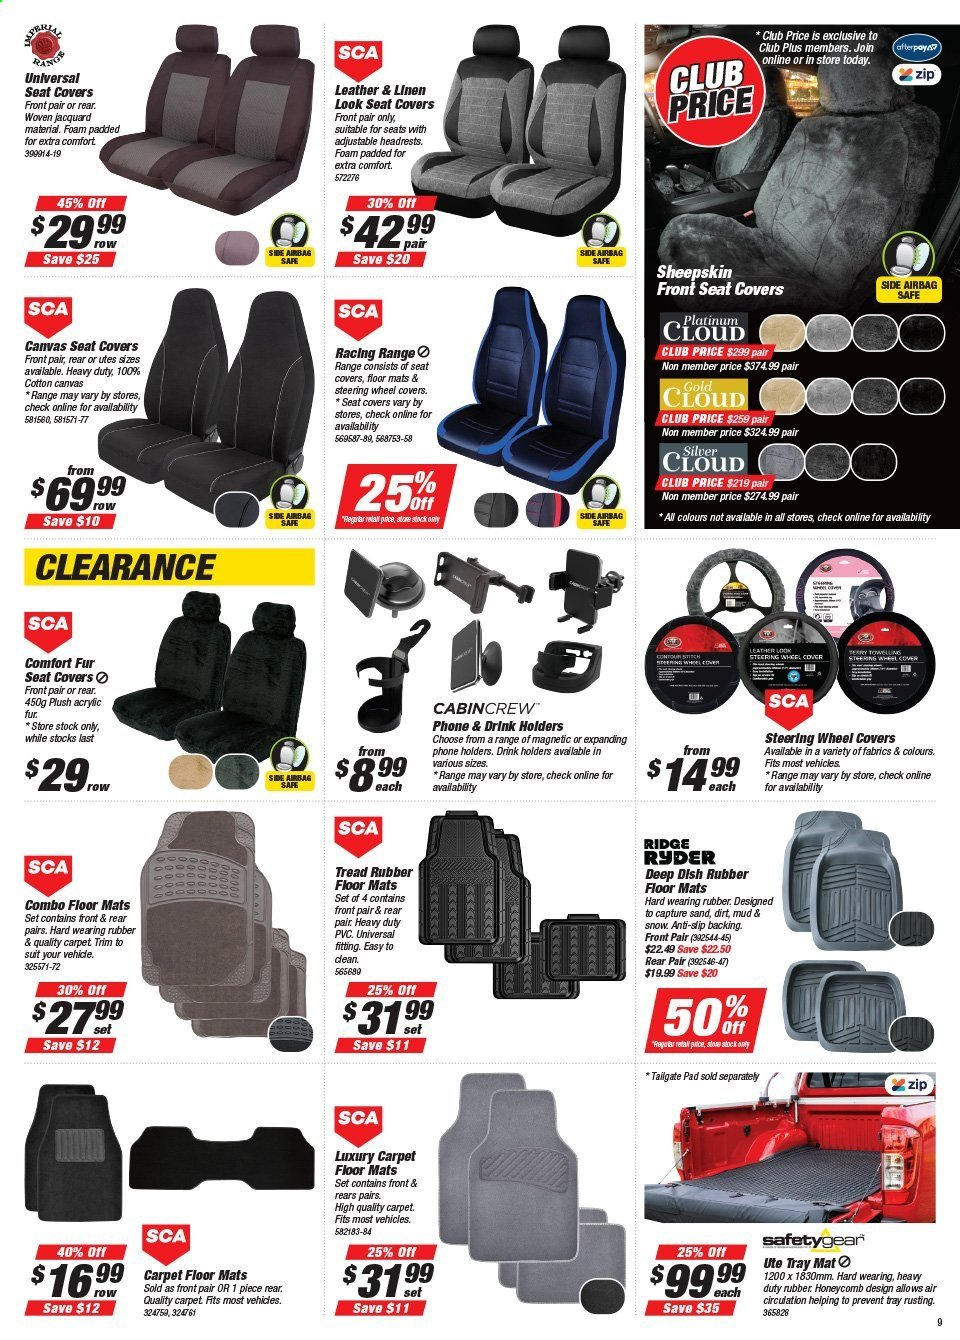 Supercheap Auto catalogue  - 22.7.2020 - 2.8.2020. Page 9.